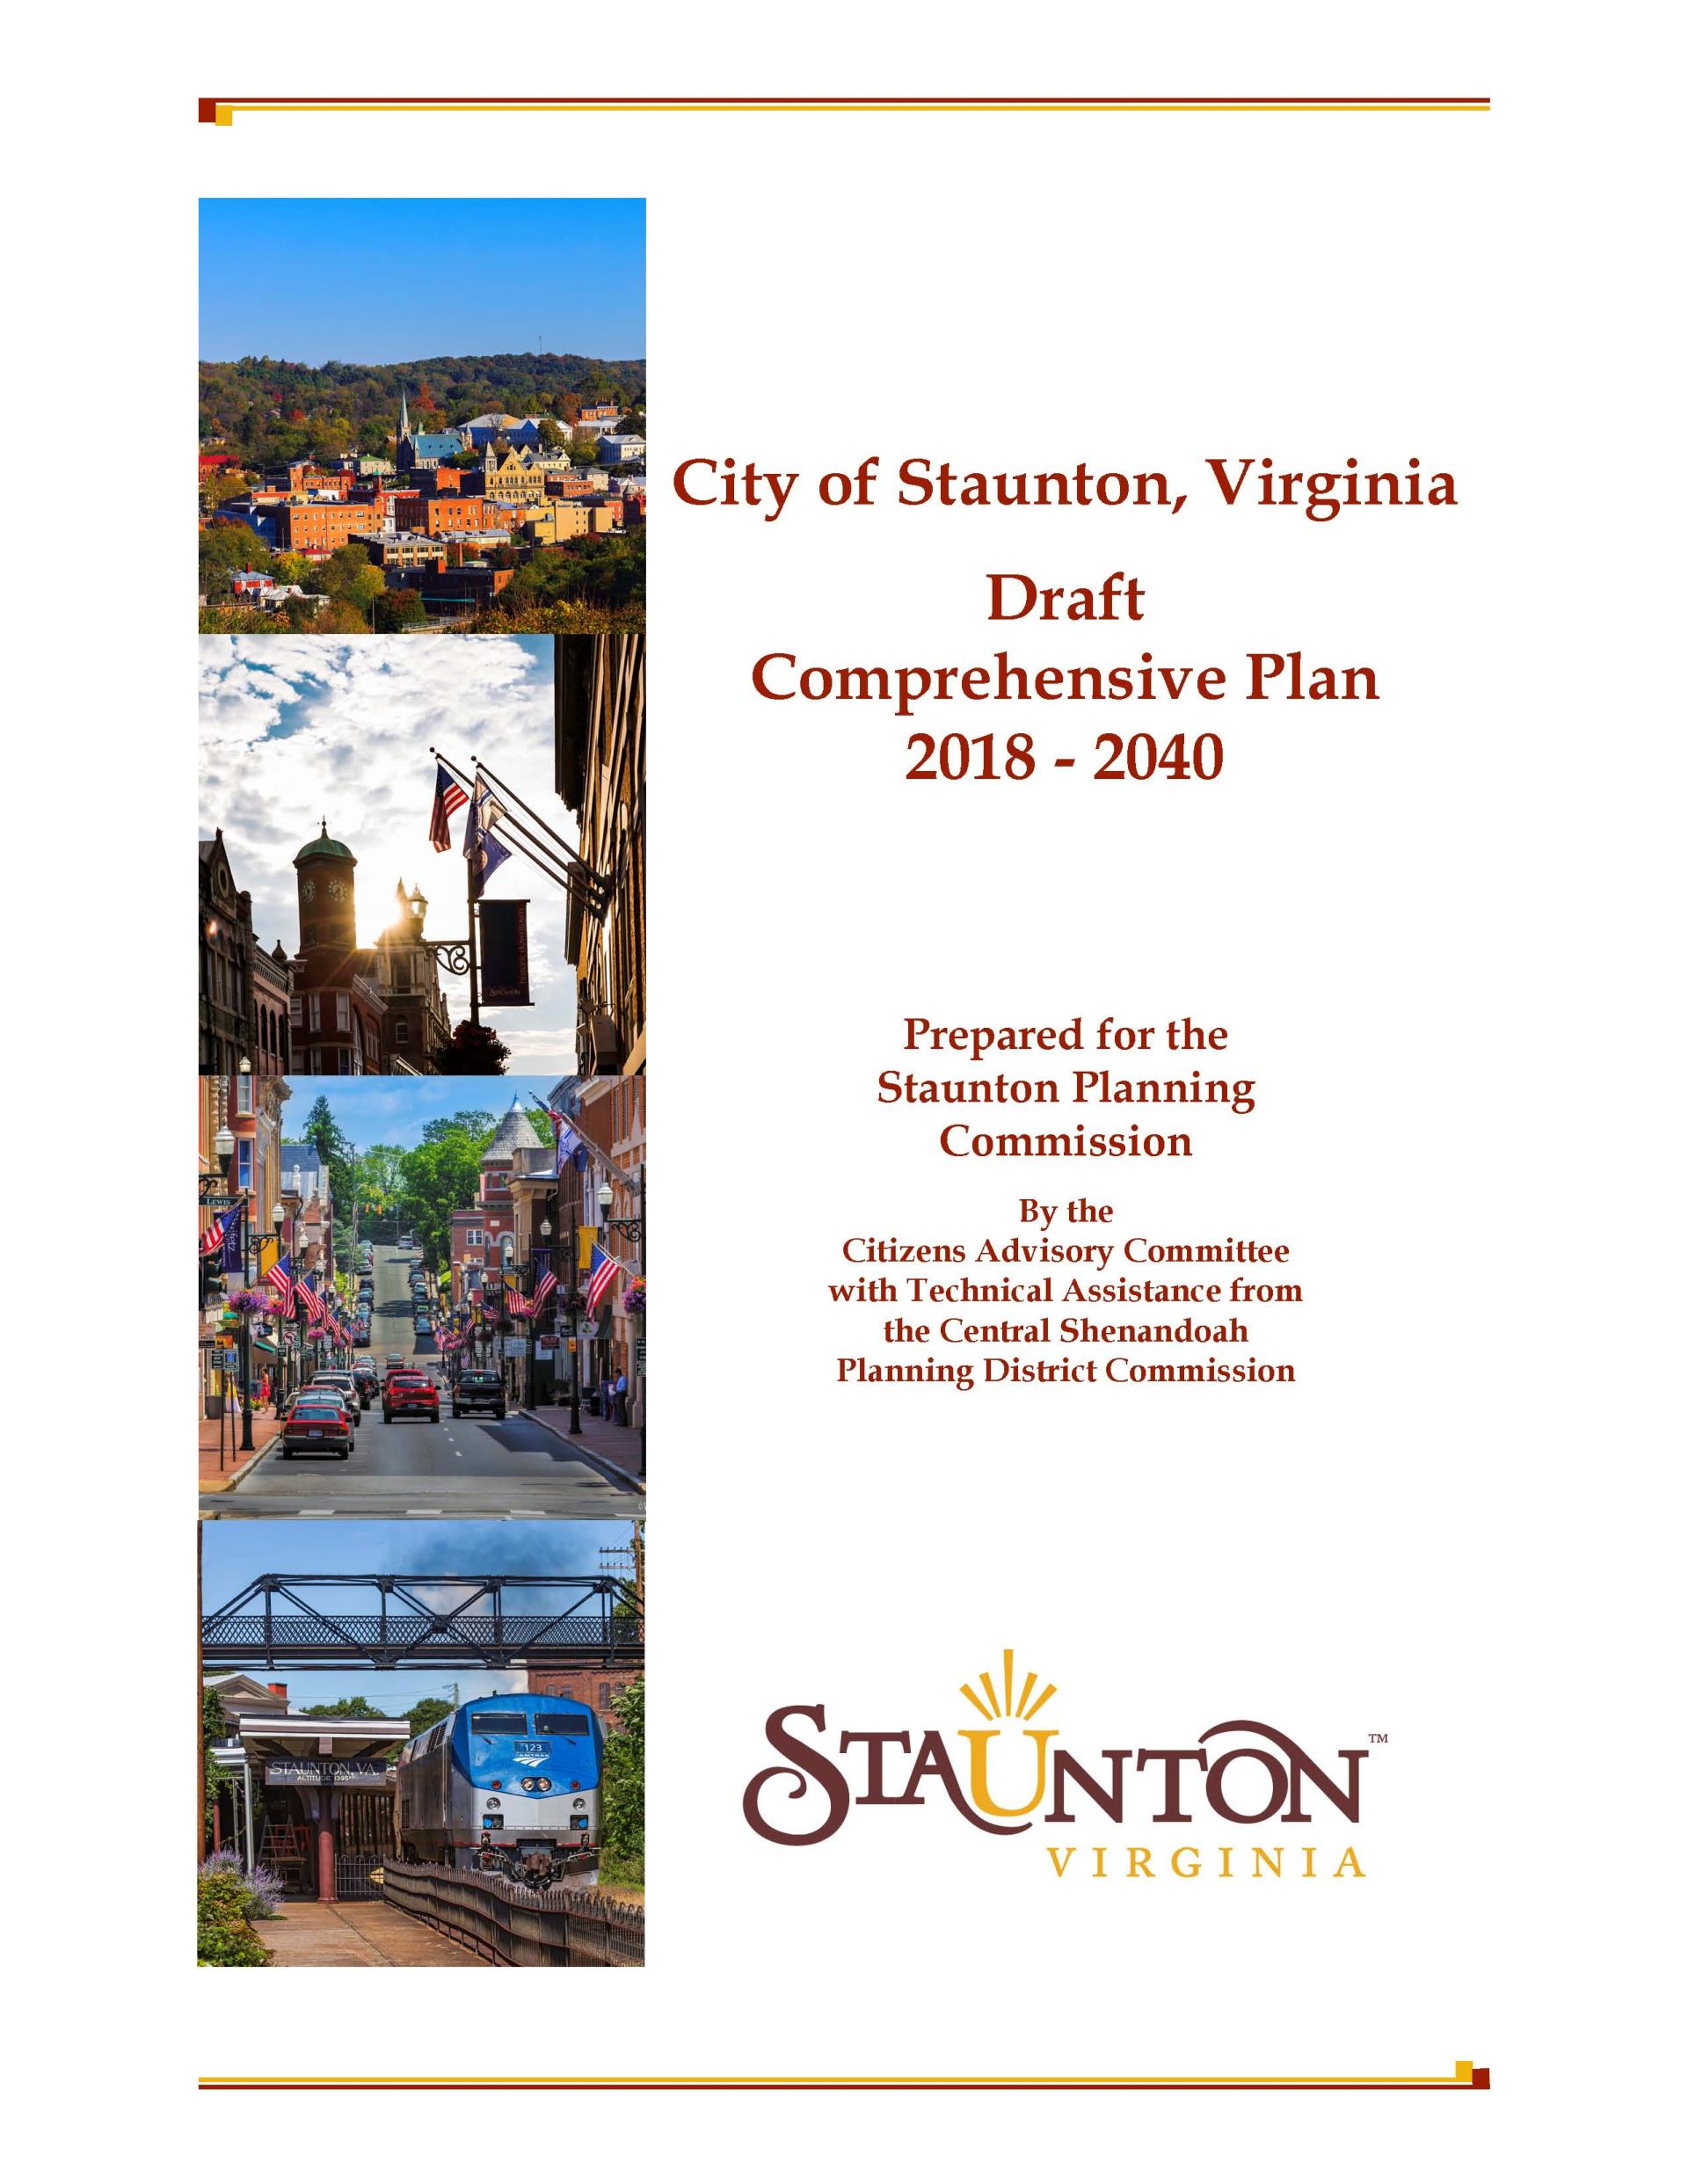 Pages from CoverPageTableOfContents_2018-2040_CompPlan_Draft_FullPlan